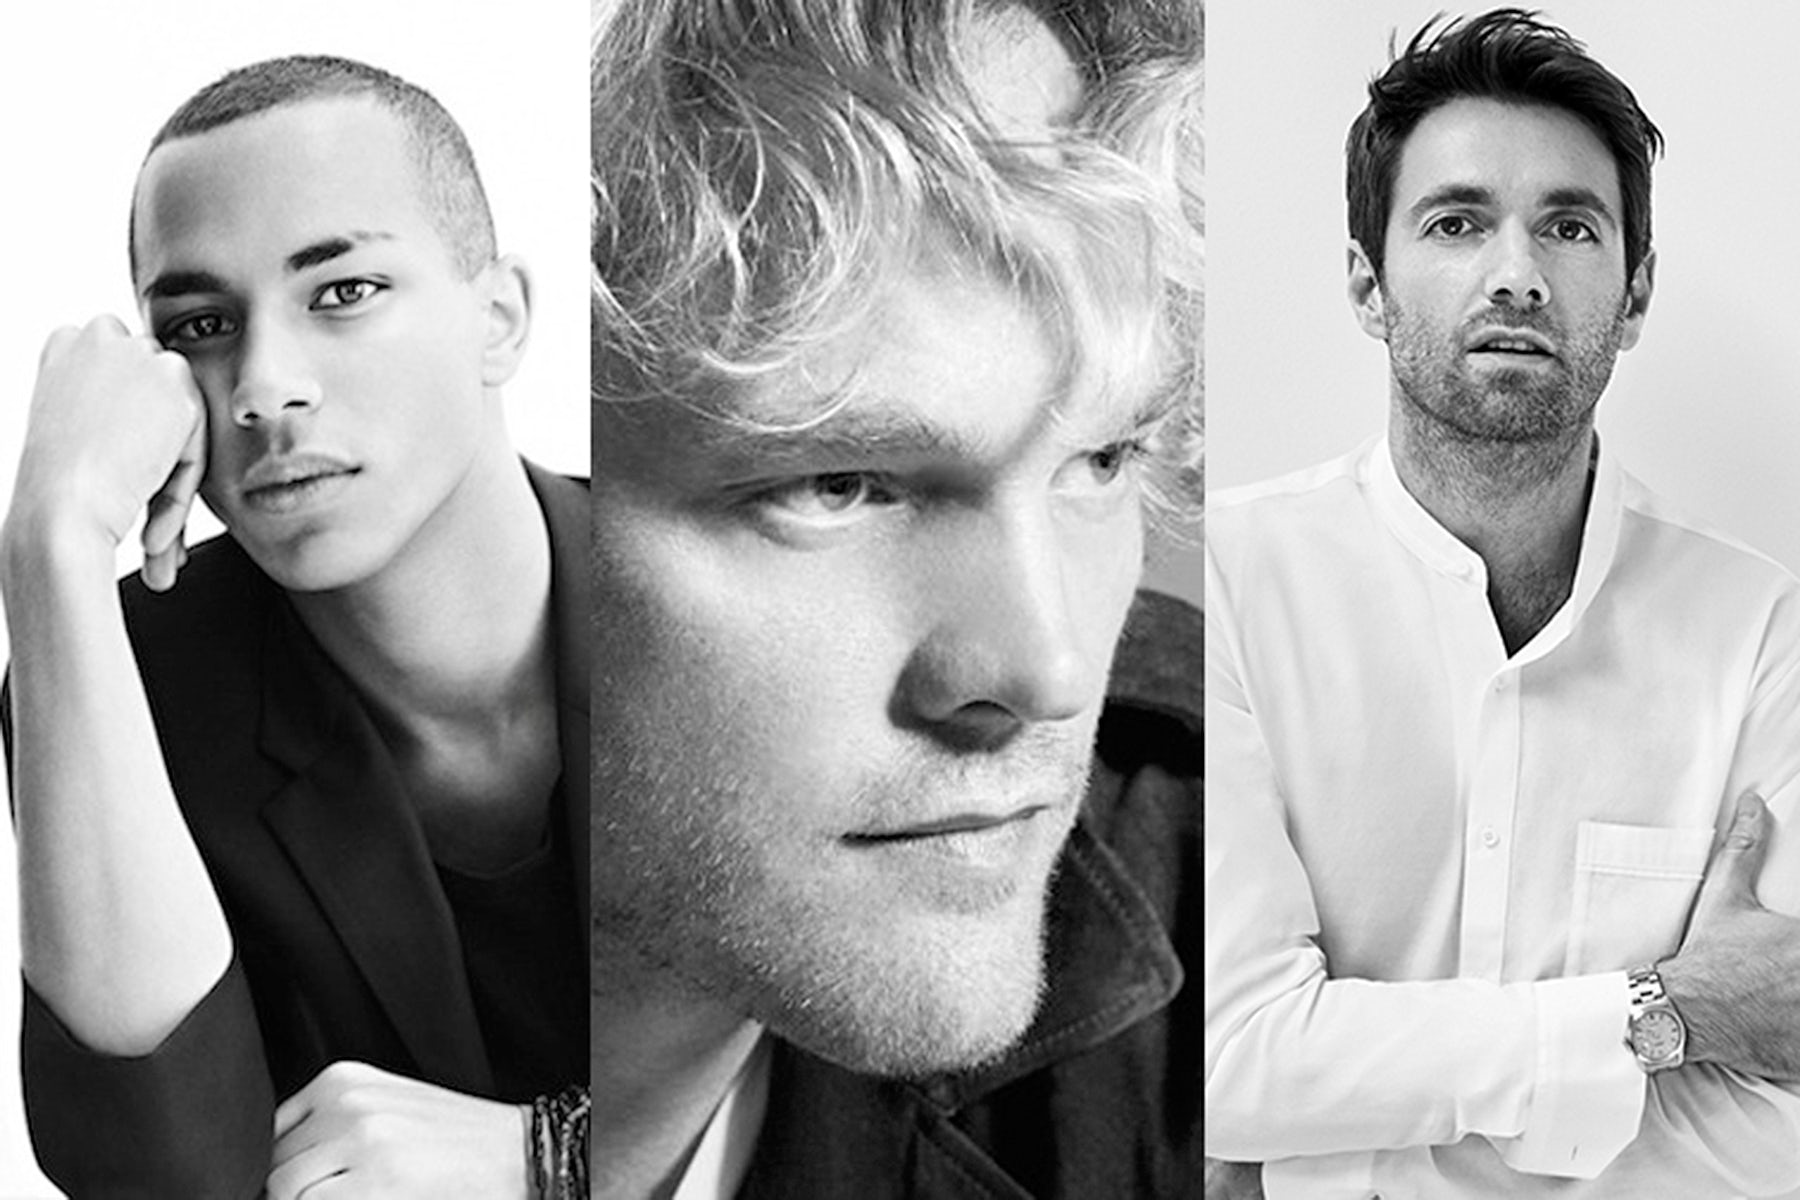 L-R: Olivier Rousteing, Peter Dundas, Massimo Giorgetti | Source: Courtesy